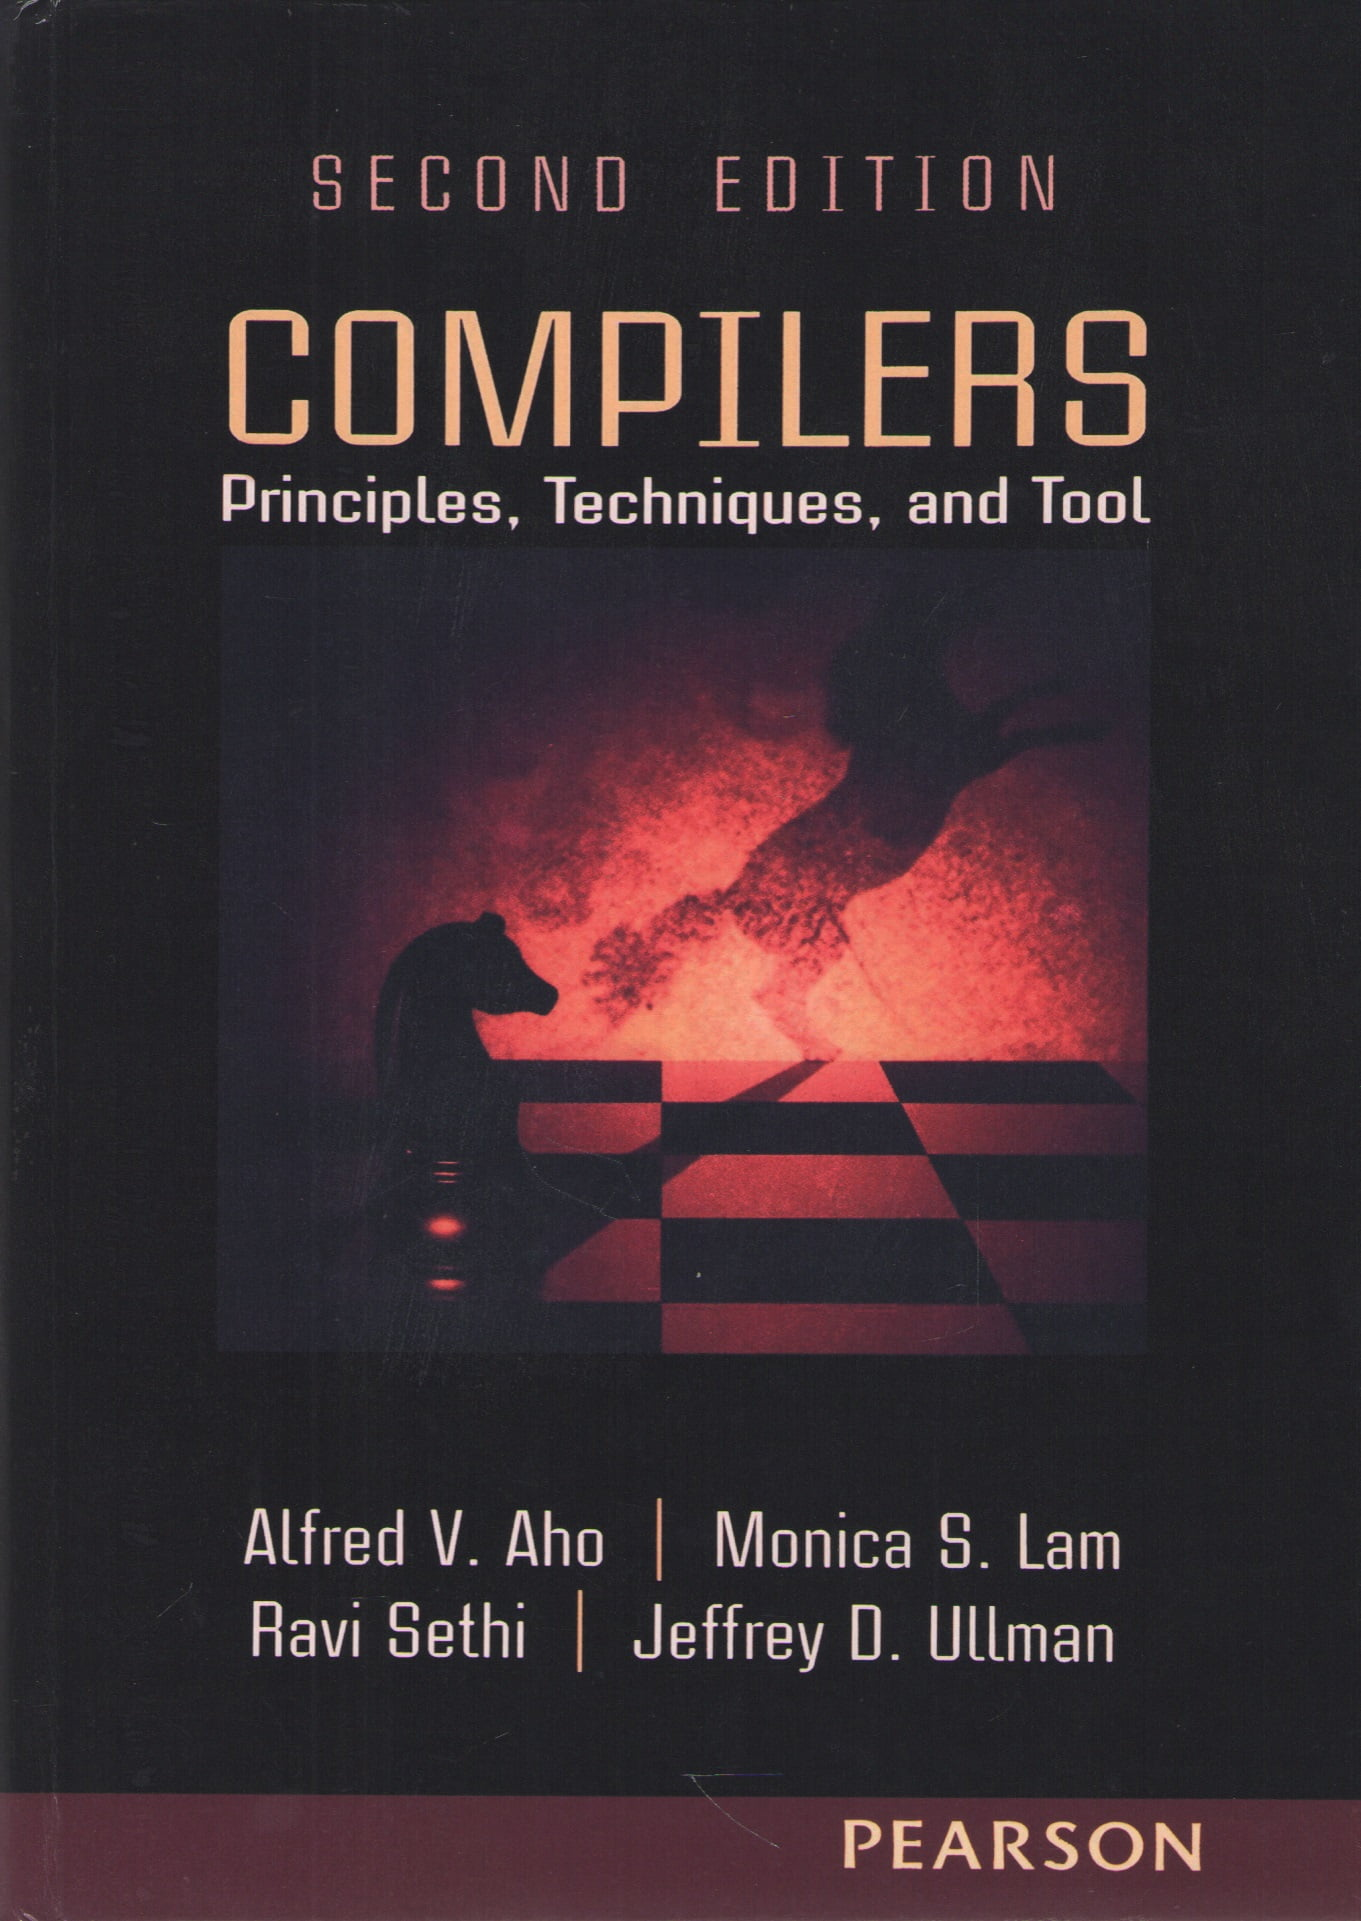 Compilers%3A+Principles%2C+Techniques%2C+and+Tools%2C+2nd+Edition - фото 1